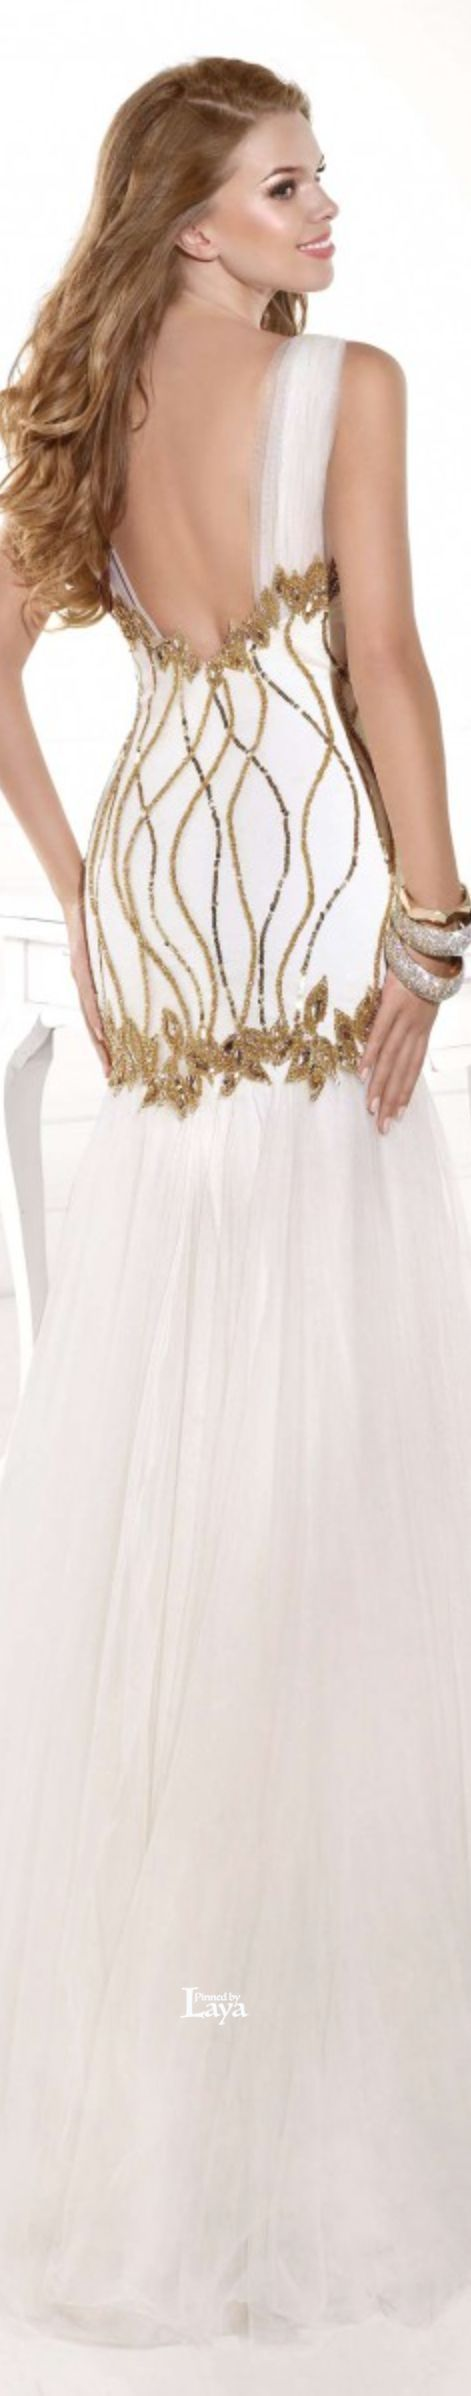 Wedding dress shops in deira dubai  Tarik Ediz  White u Gold Fashion  Pinterest  White gold